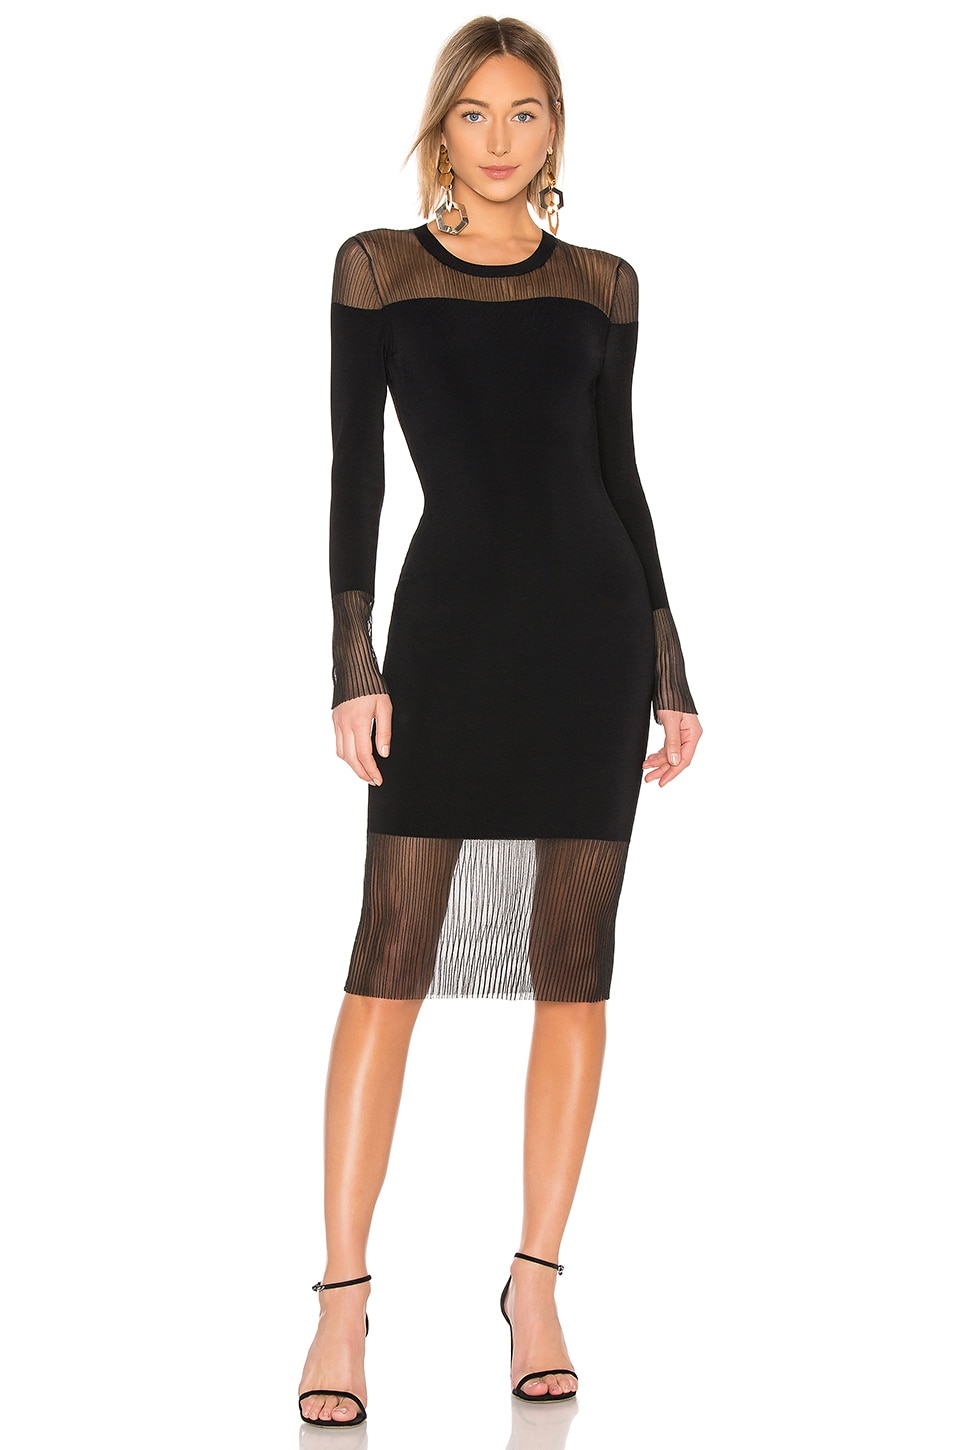 Bailey 44 Lovey Dovey Sweater Dress in Black